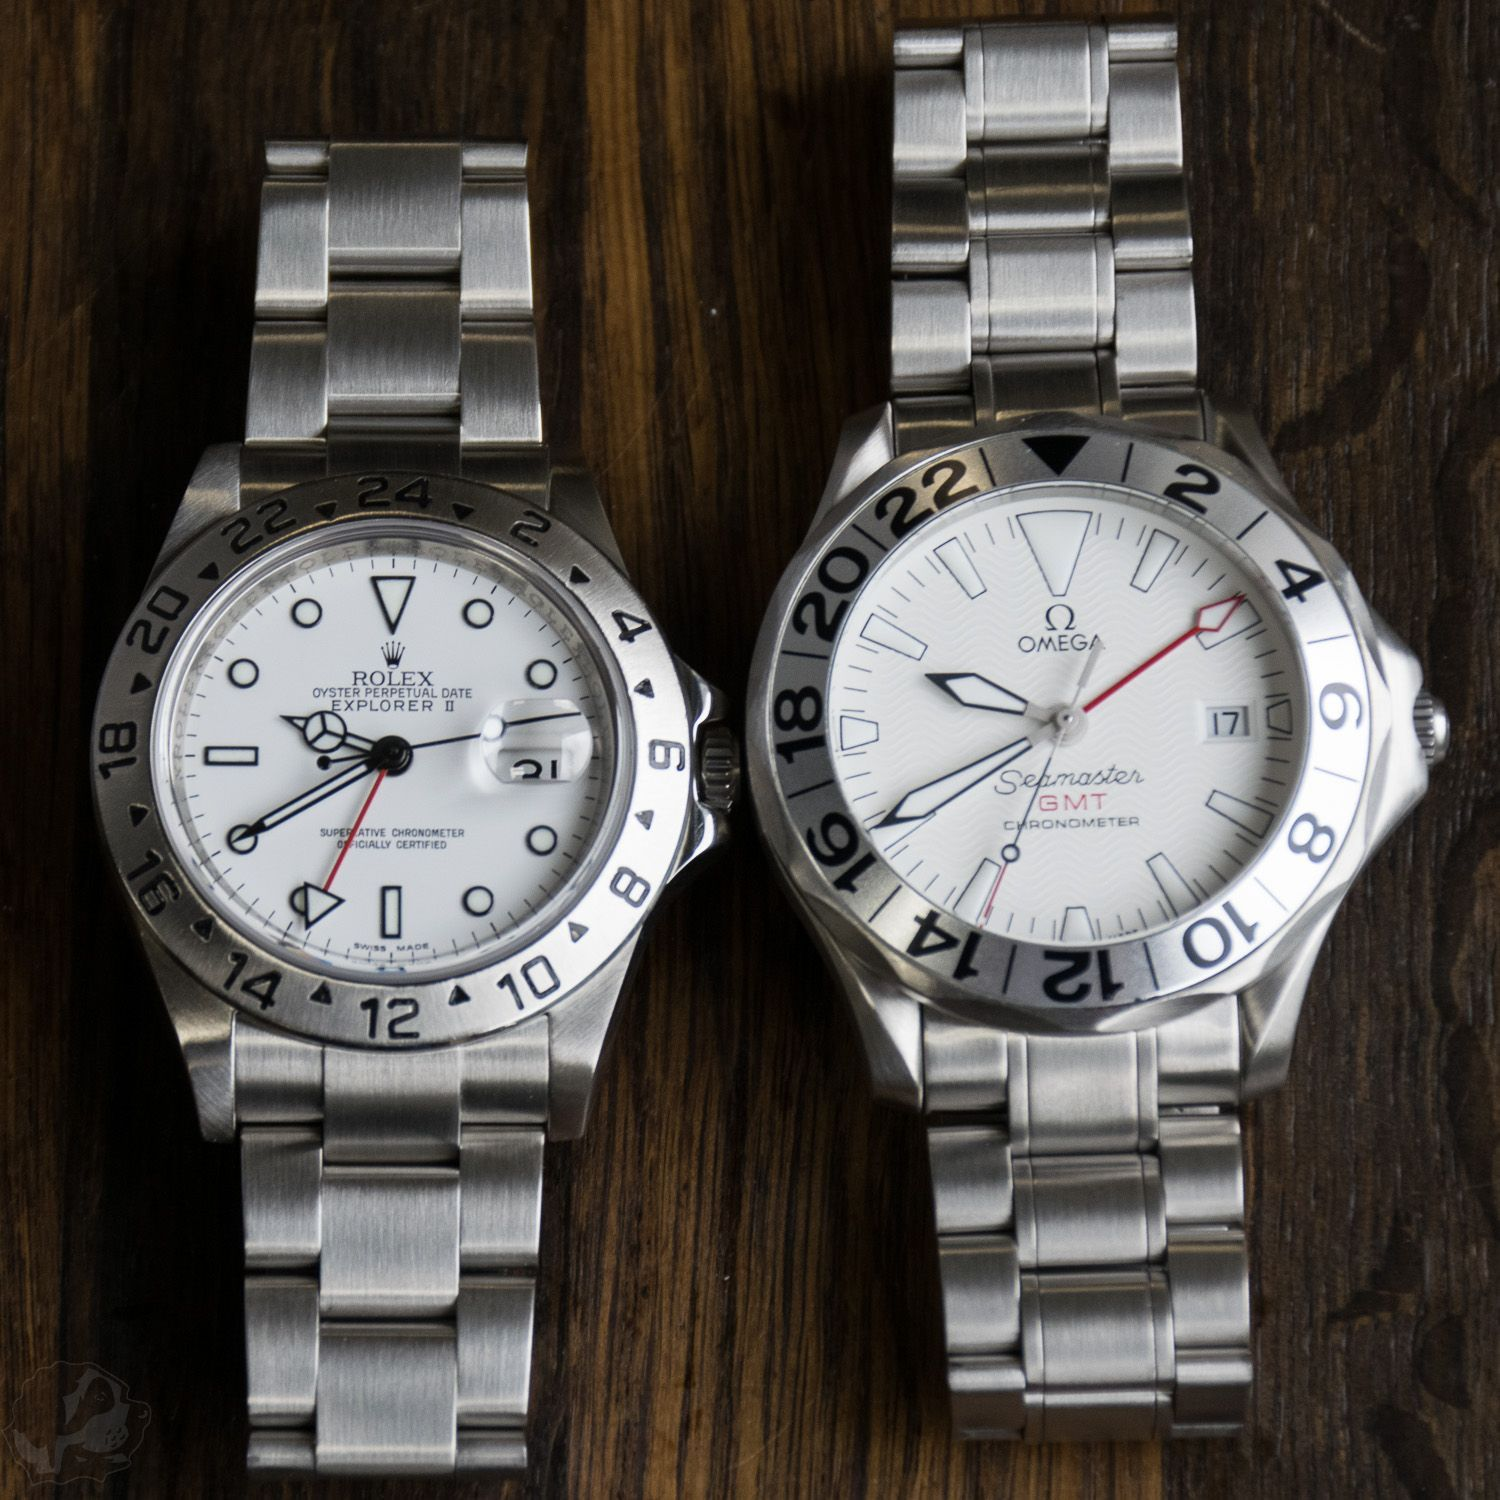 A pair of Polar GMT watches: Rolex Explorer II 16570 vs Omega Seamaster GMT Great White. #Omegaseamaster #rolexexplorer